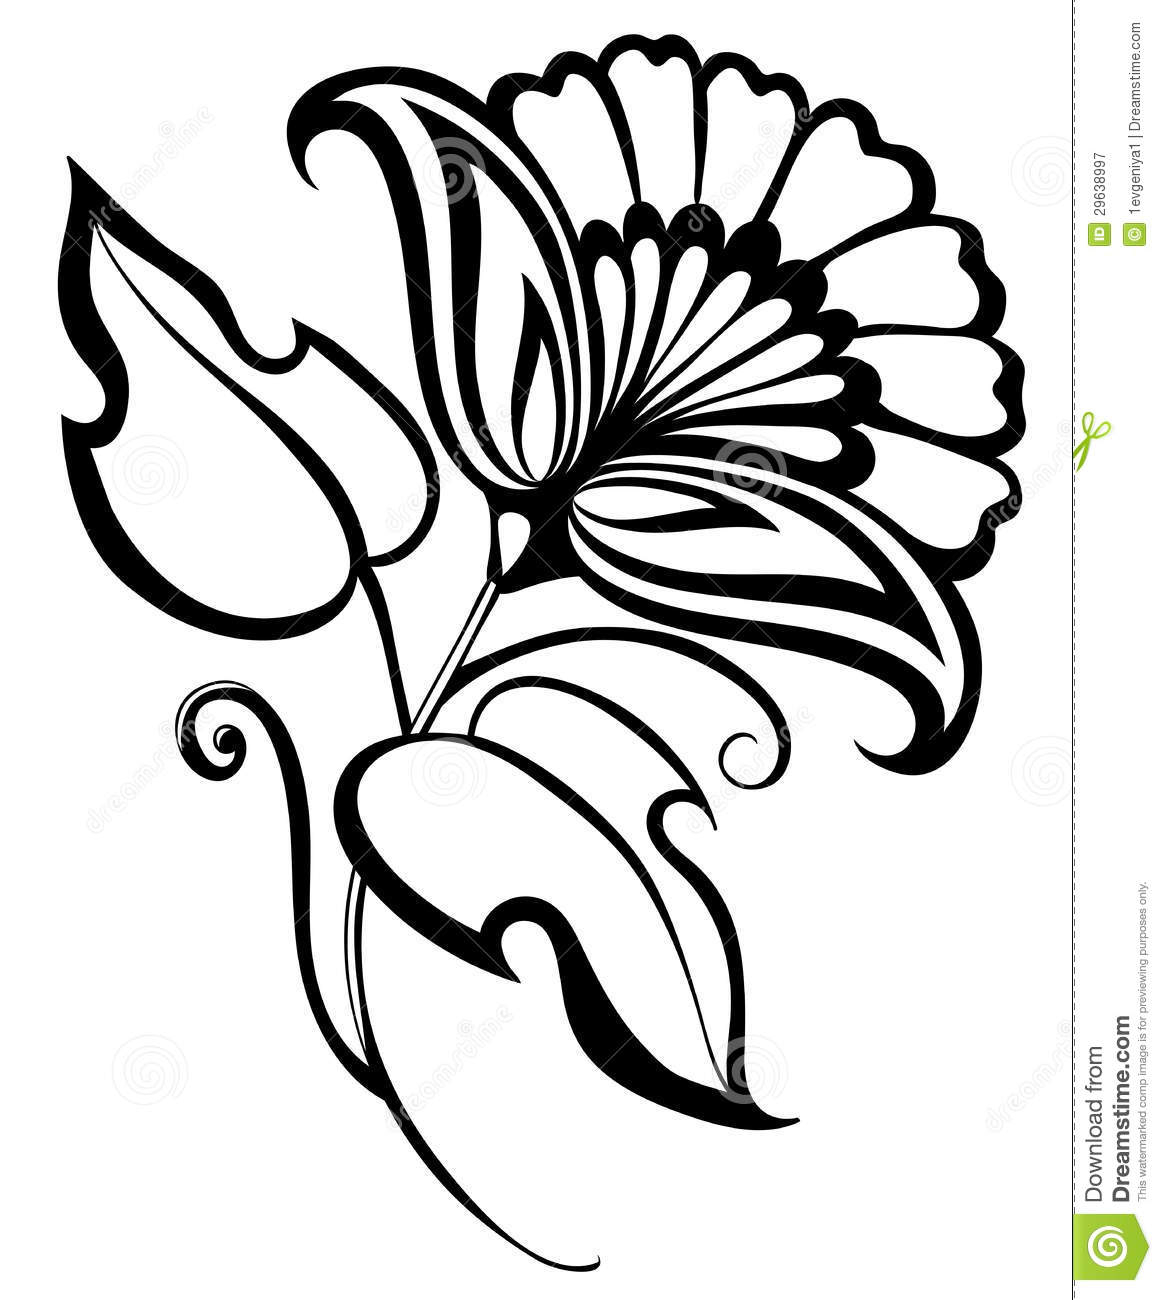 Fancy Flower Drawing at GetDrawings com | Free for personal use